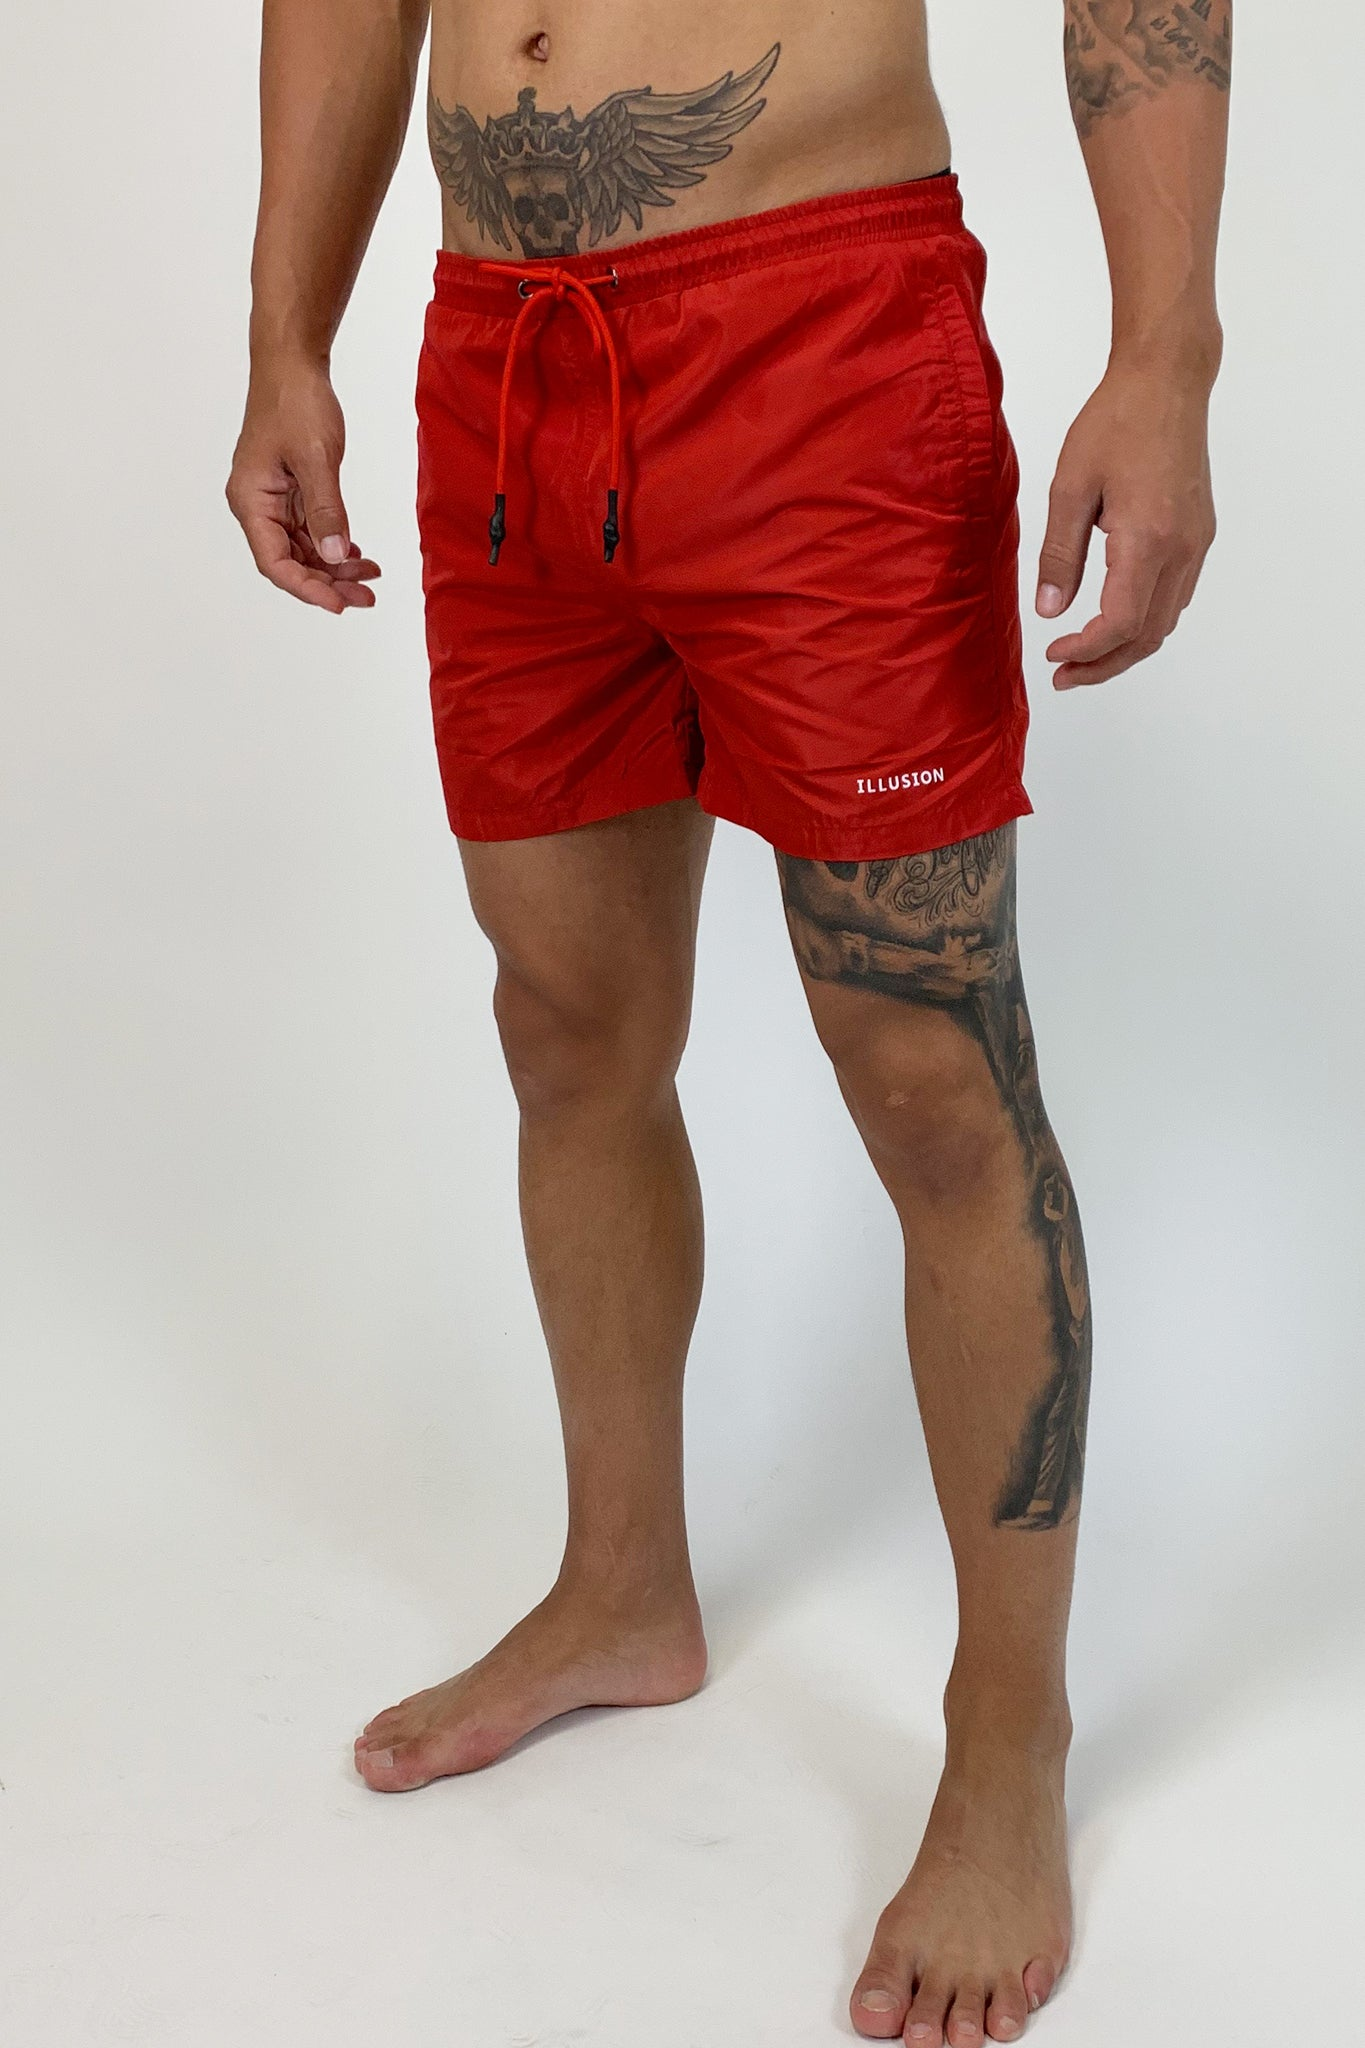 ILLUSION RED SWIMSHORTS - Illusion Attire